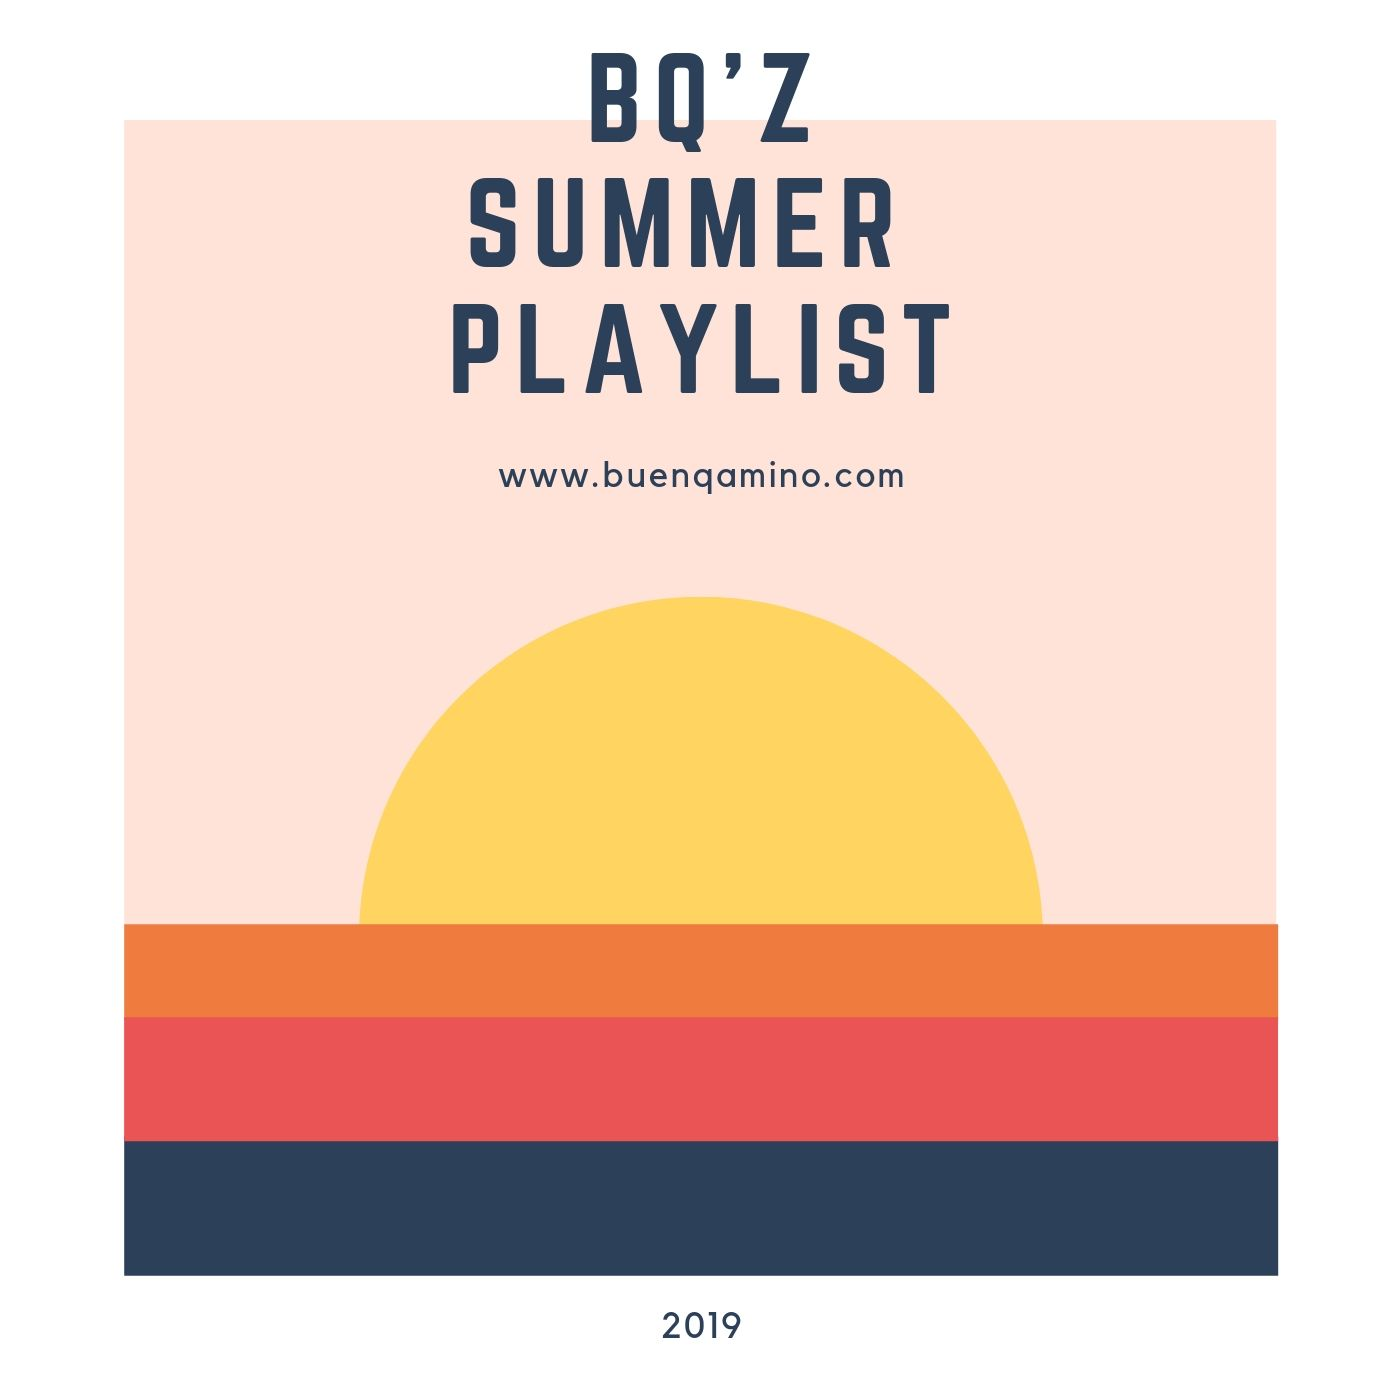 Summer 2019 Playlist - Perfect for the beach, river floating, or summer dazing. Mineral sunscreen not included.